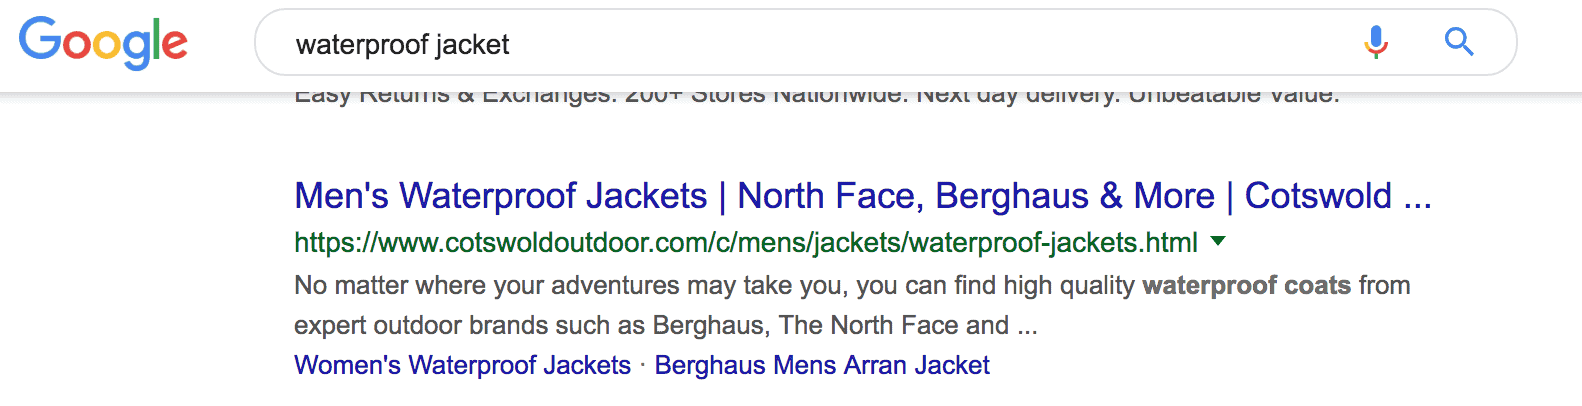 Waterproof Jacket Google Search Results